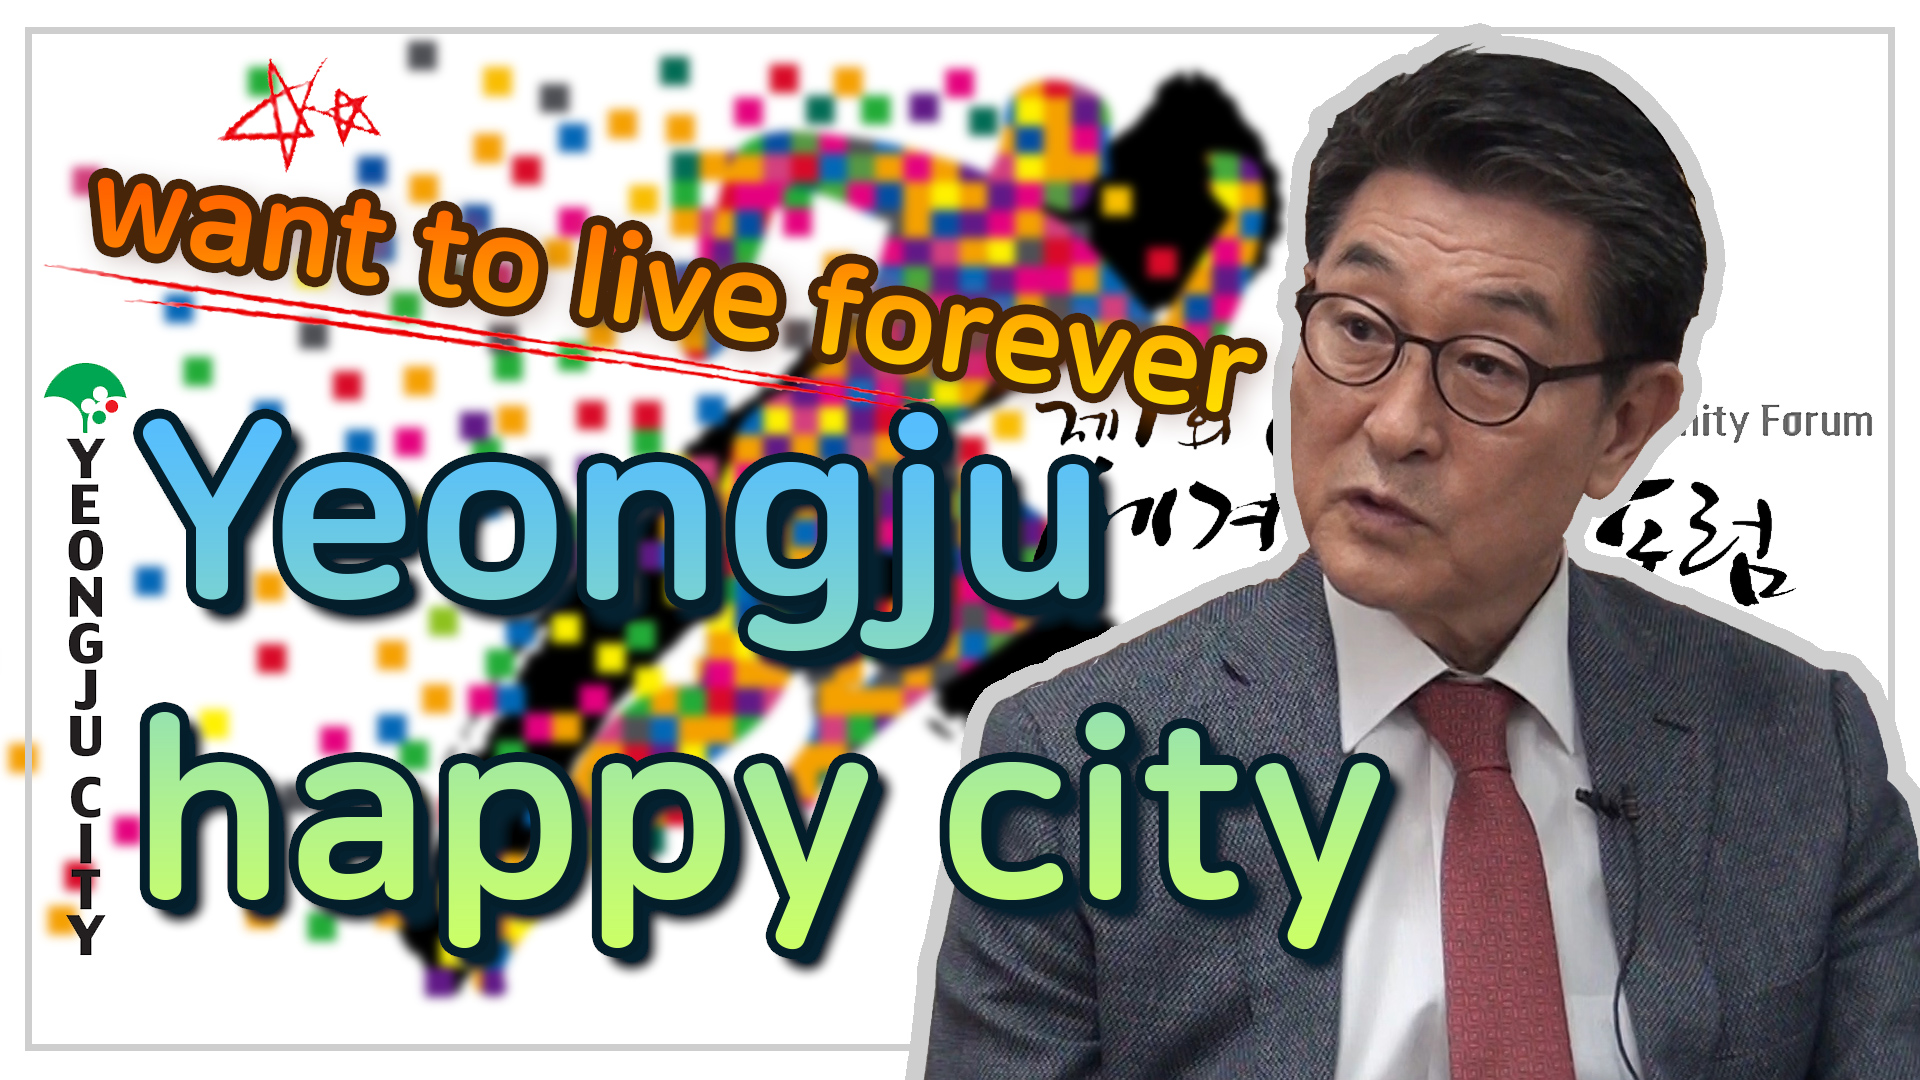 Wook-Hyun Jang, the Mayor of Yeongju, Yeongju is a happy city that people want to live forever.